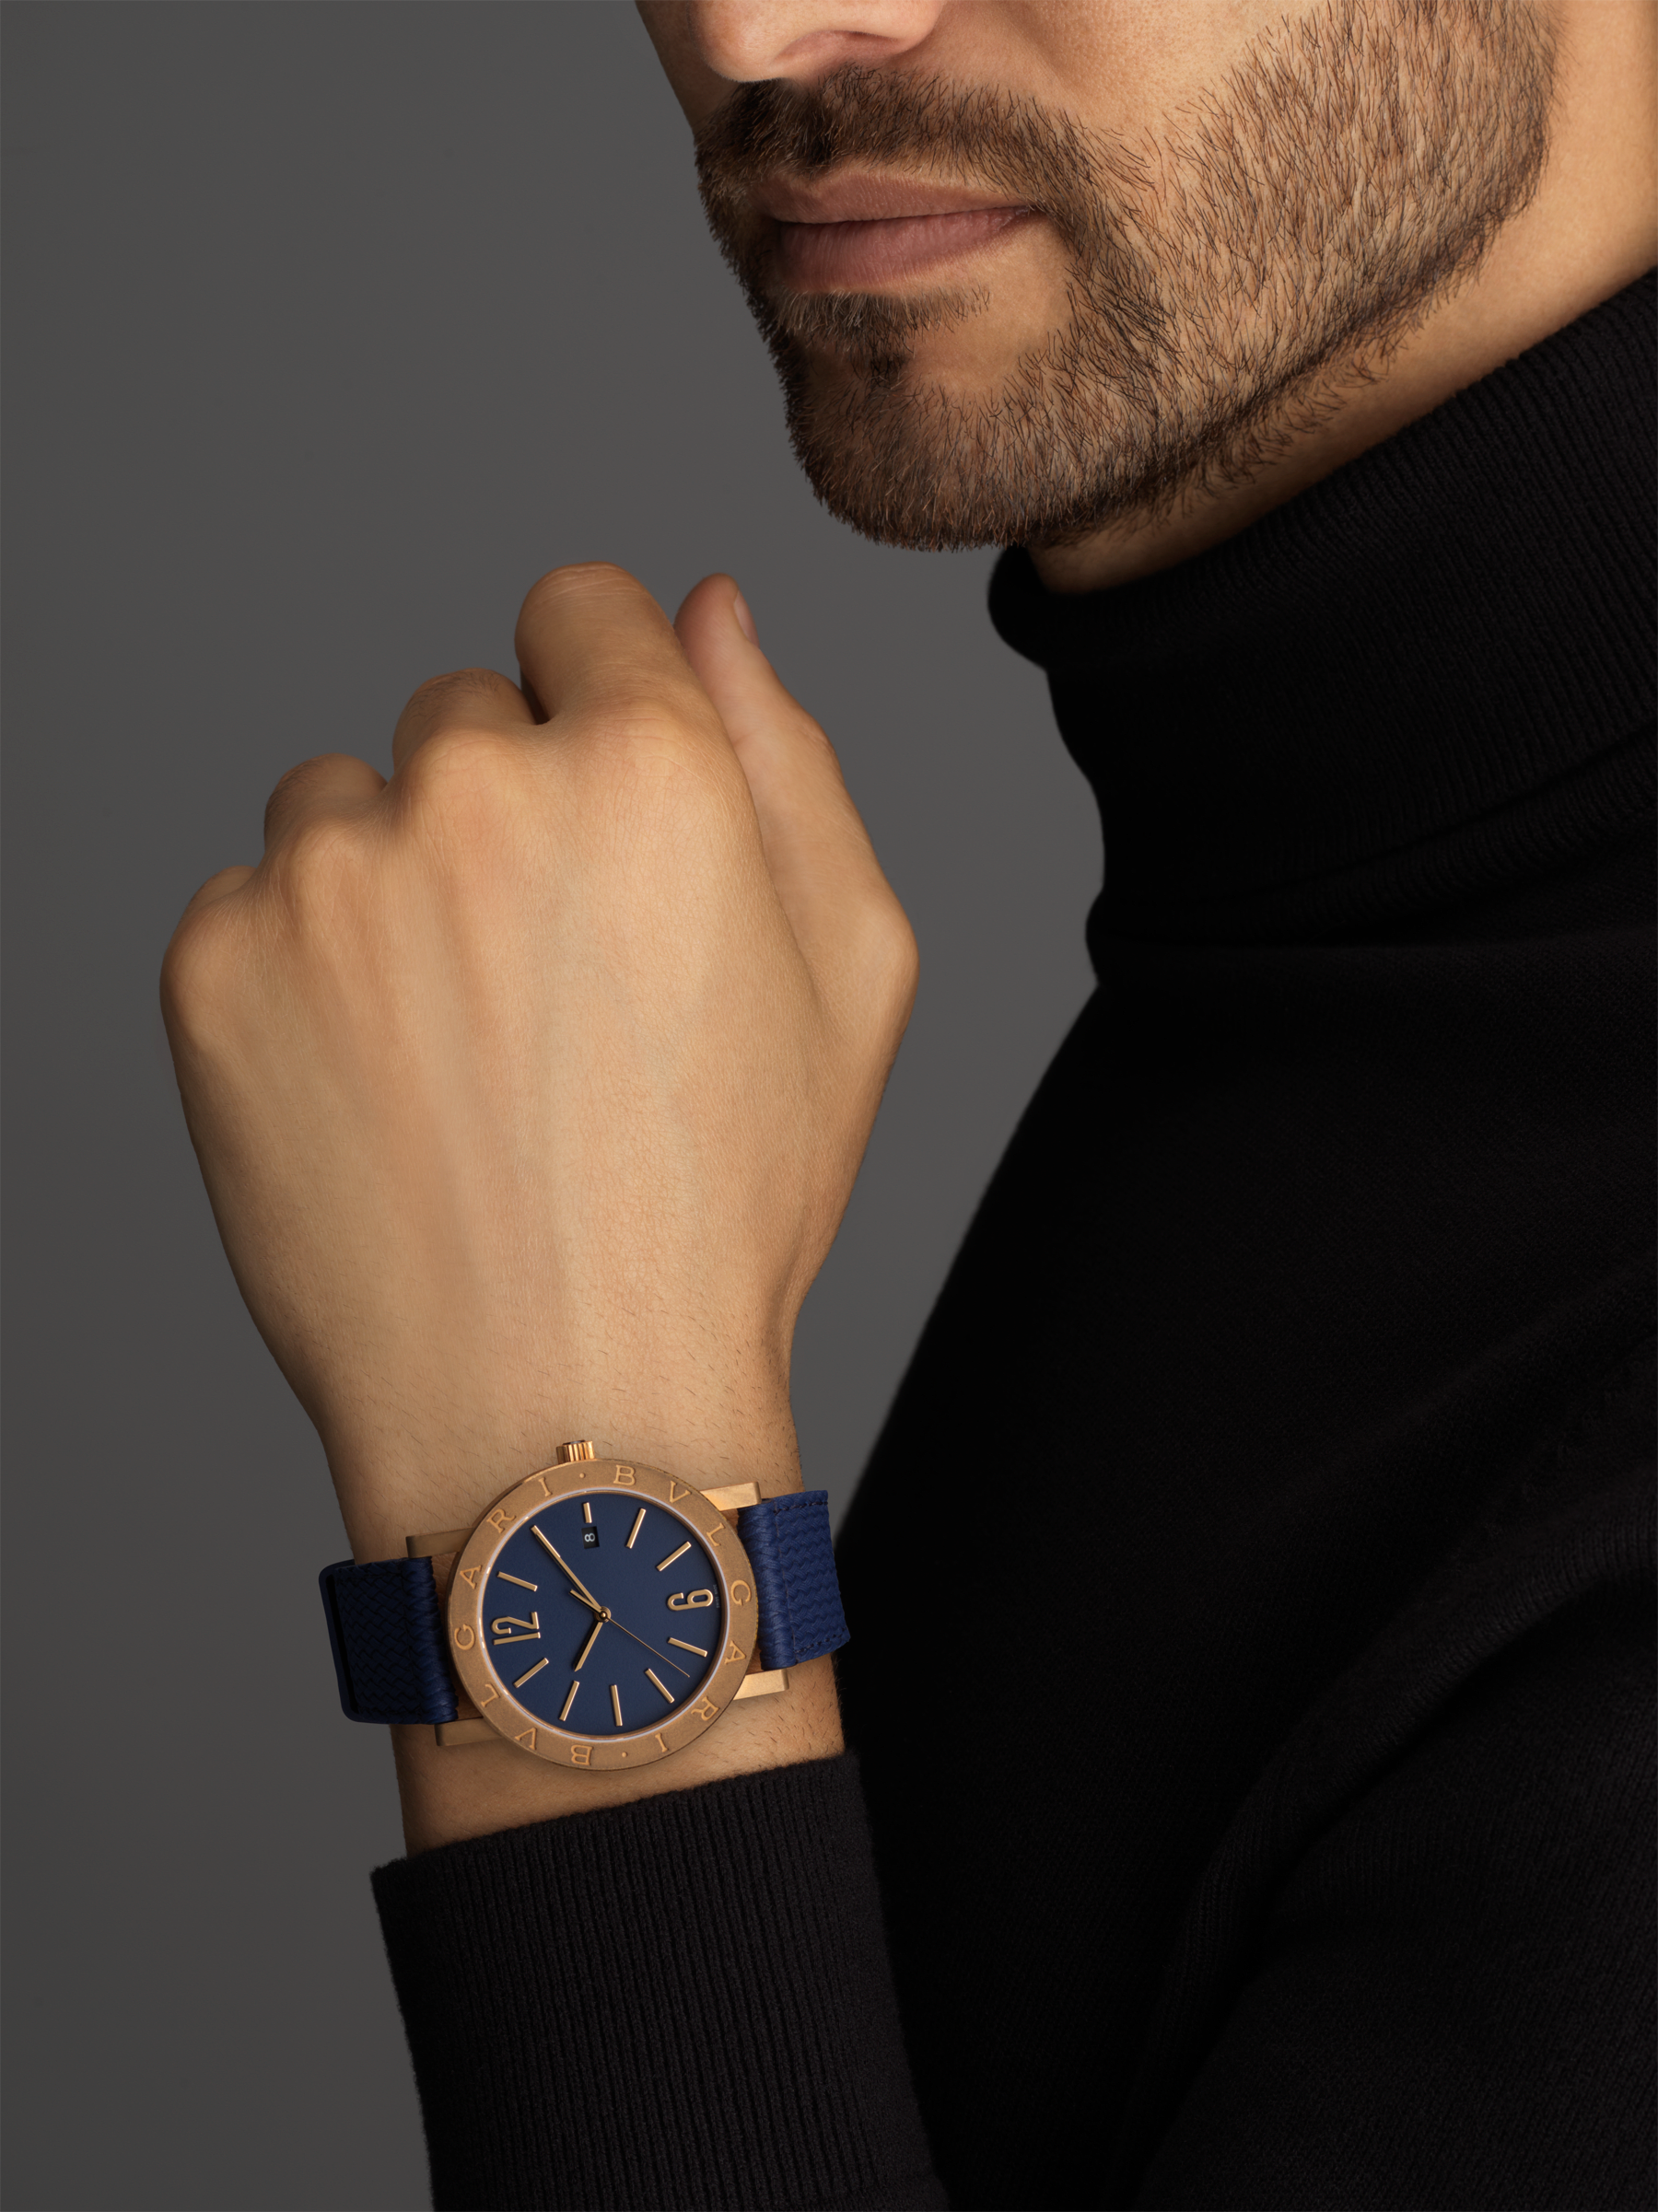 BVLGARI BVLGARI watch with mechanical manufacture movement, automatic winding and date, bronze case with double logo engraving on the bezel, blue dial and a blue rubber bracelet. 103132 image 2